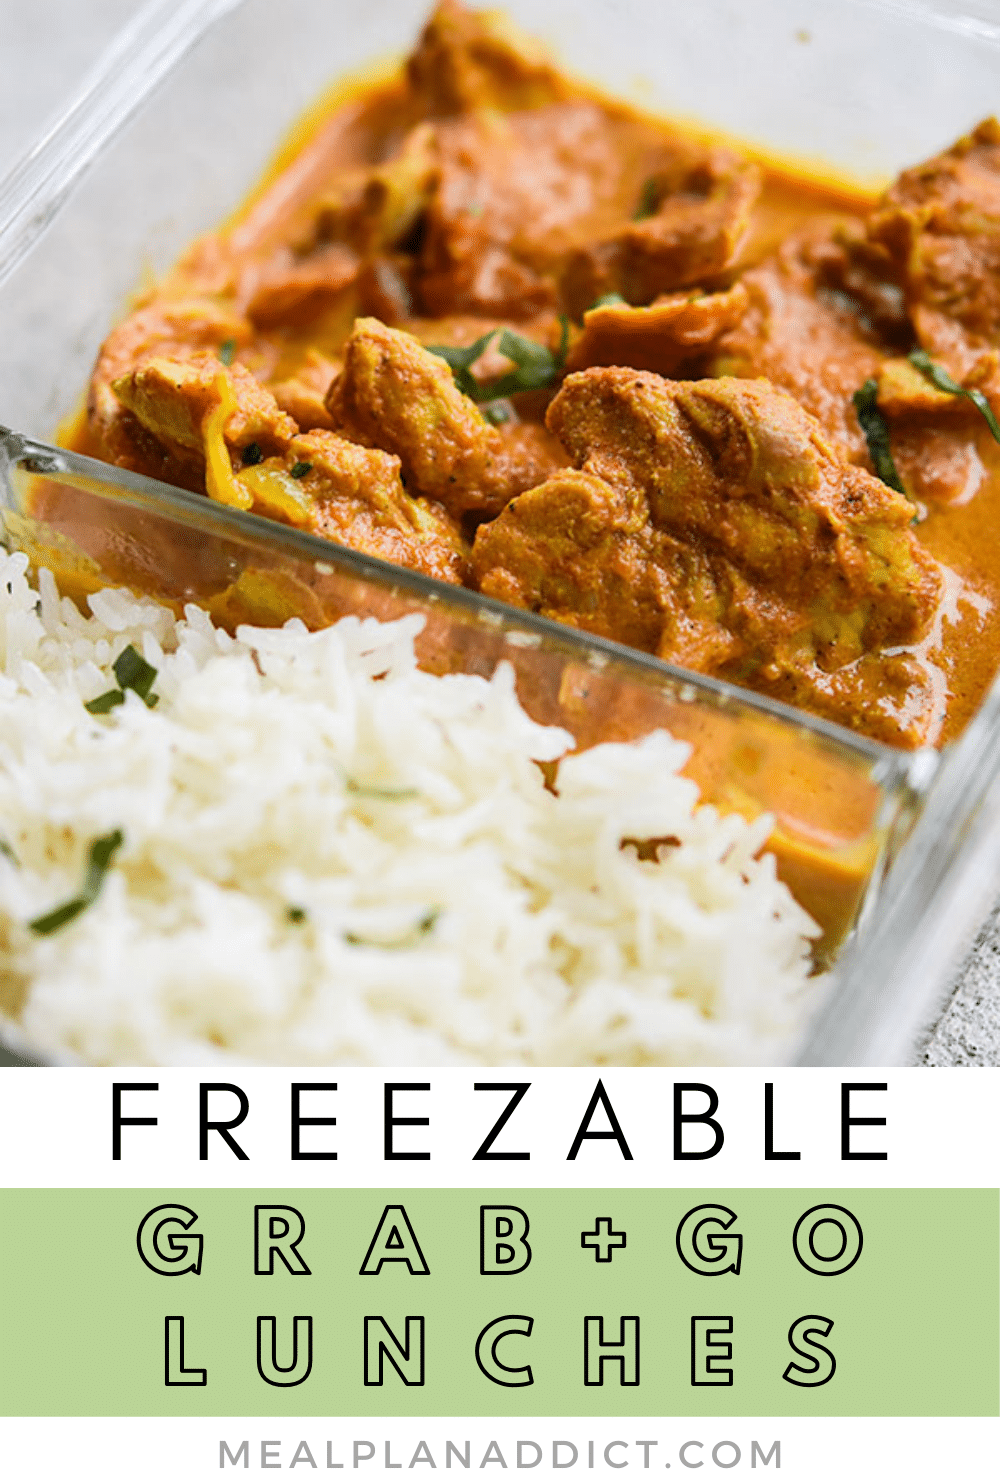 How to Make Freezable Grab and Go Lunches | Meal Plan Addict